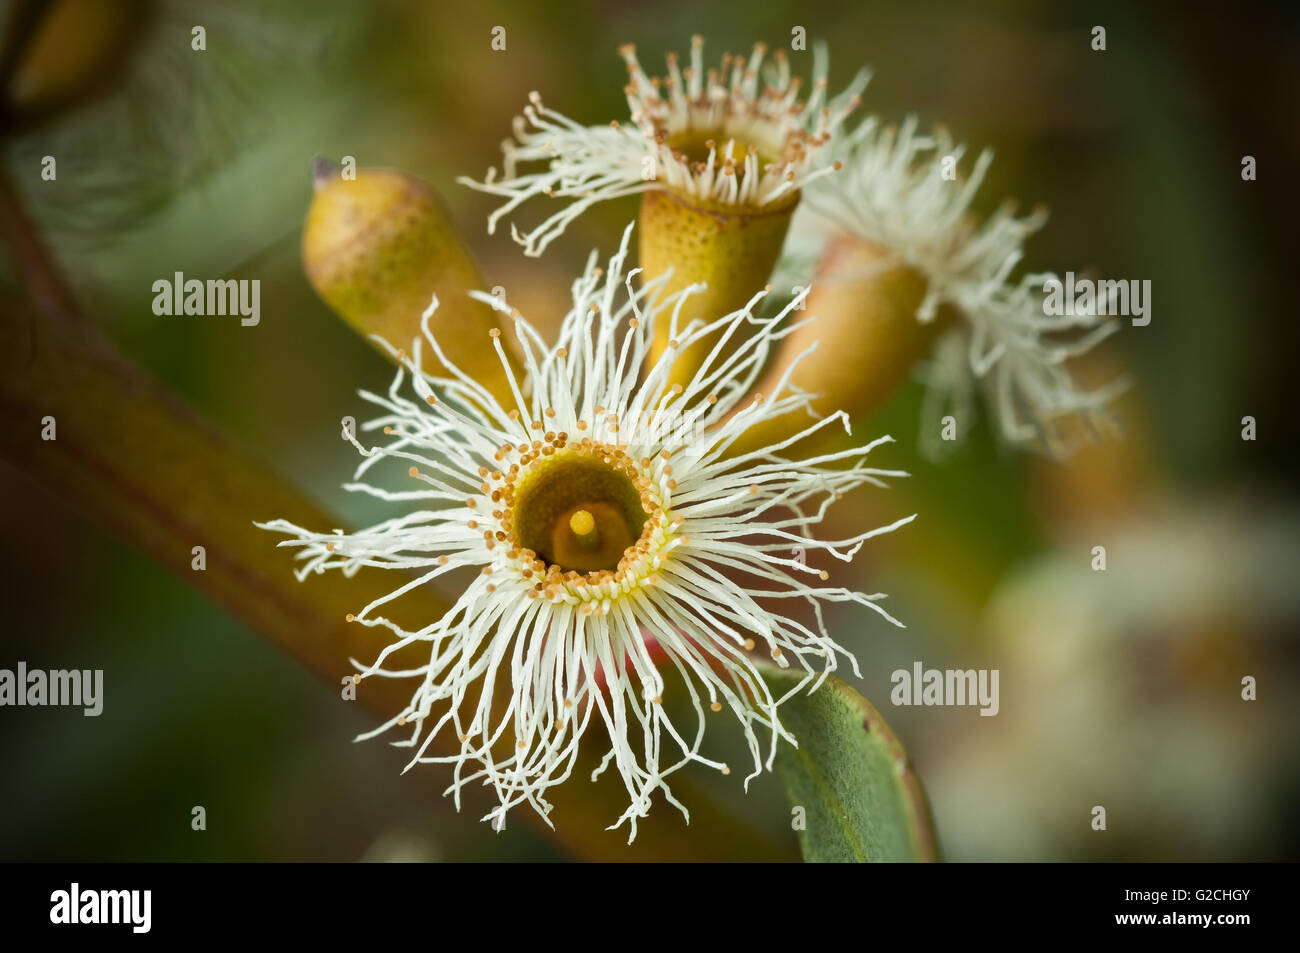 Flower Mallee Tree, Australia. - Stock Image